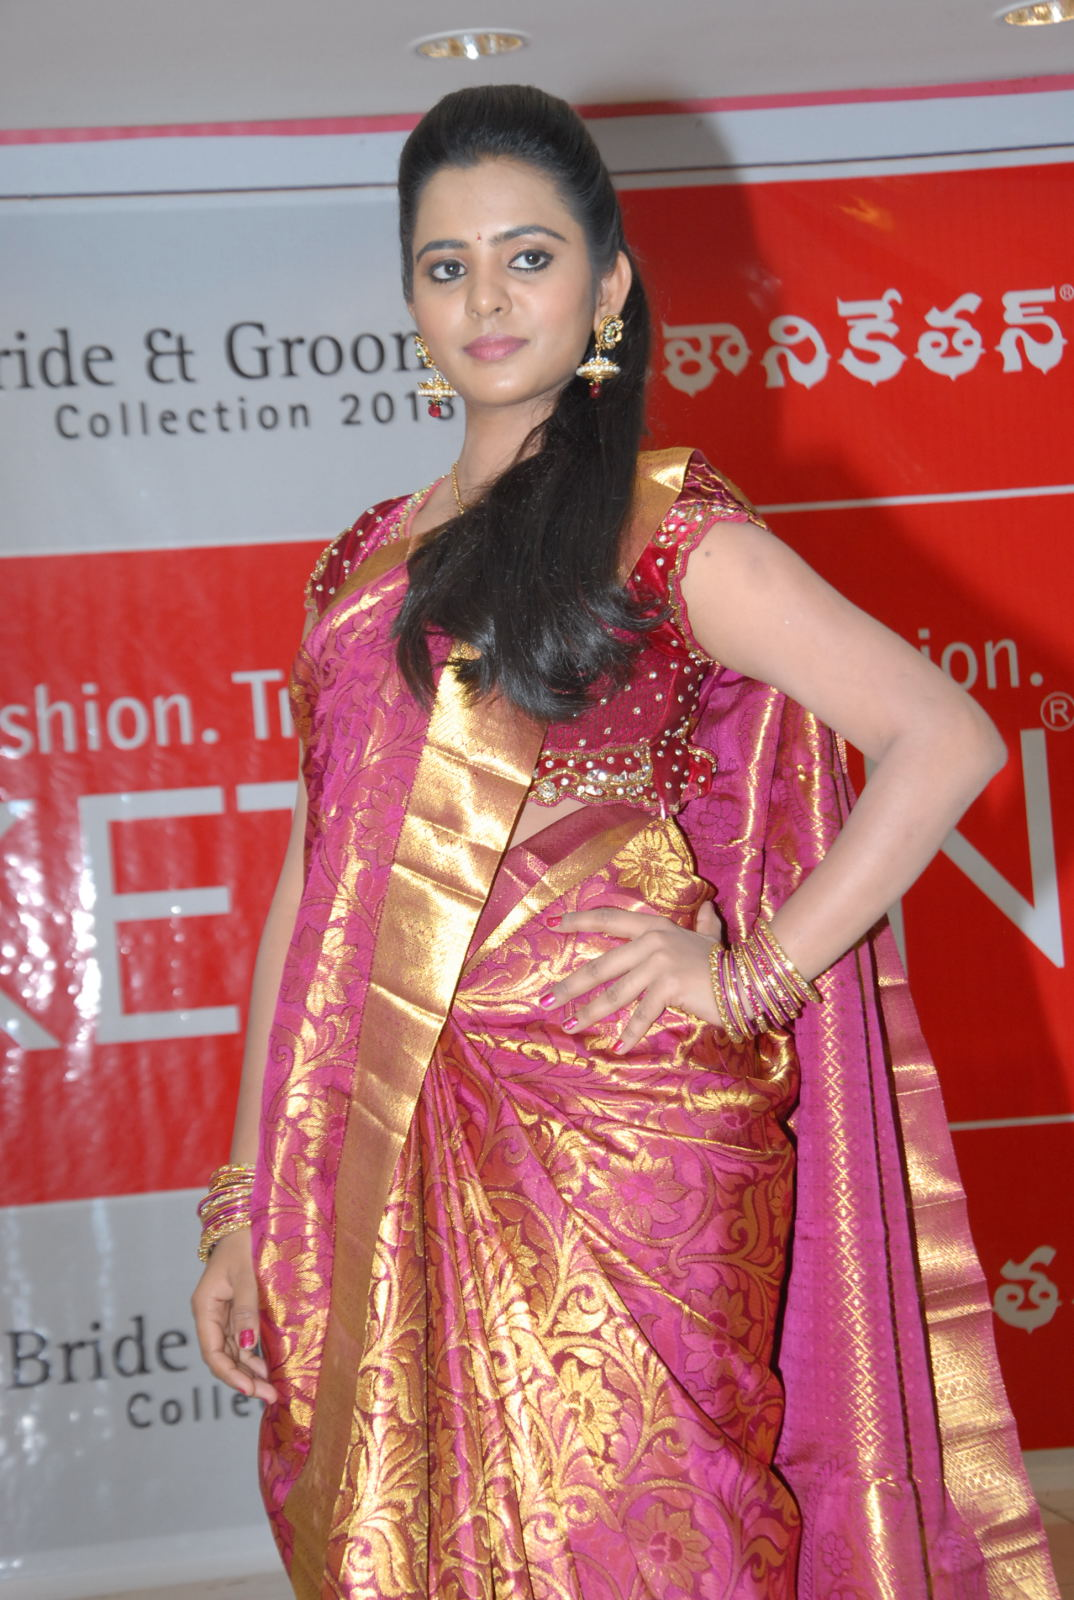 ethnic diva Manasa at kalaniketan bride and groom collection launch